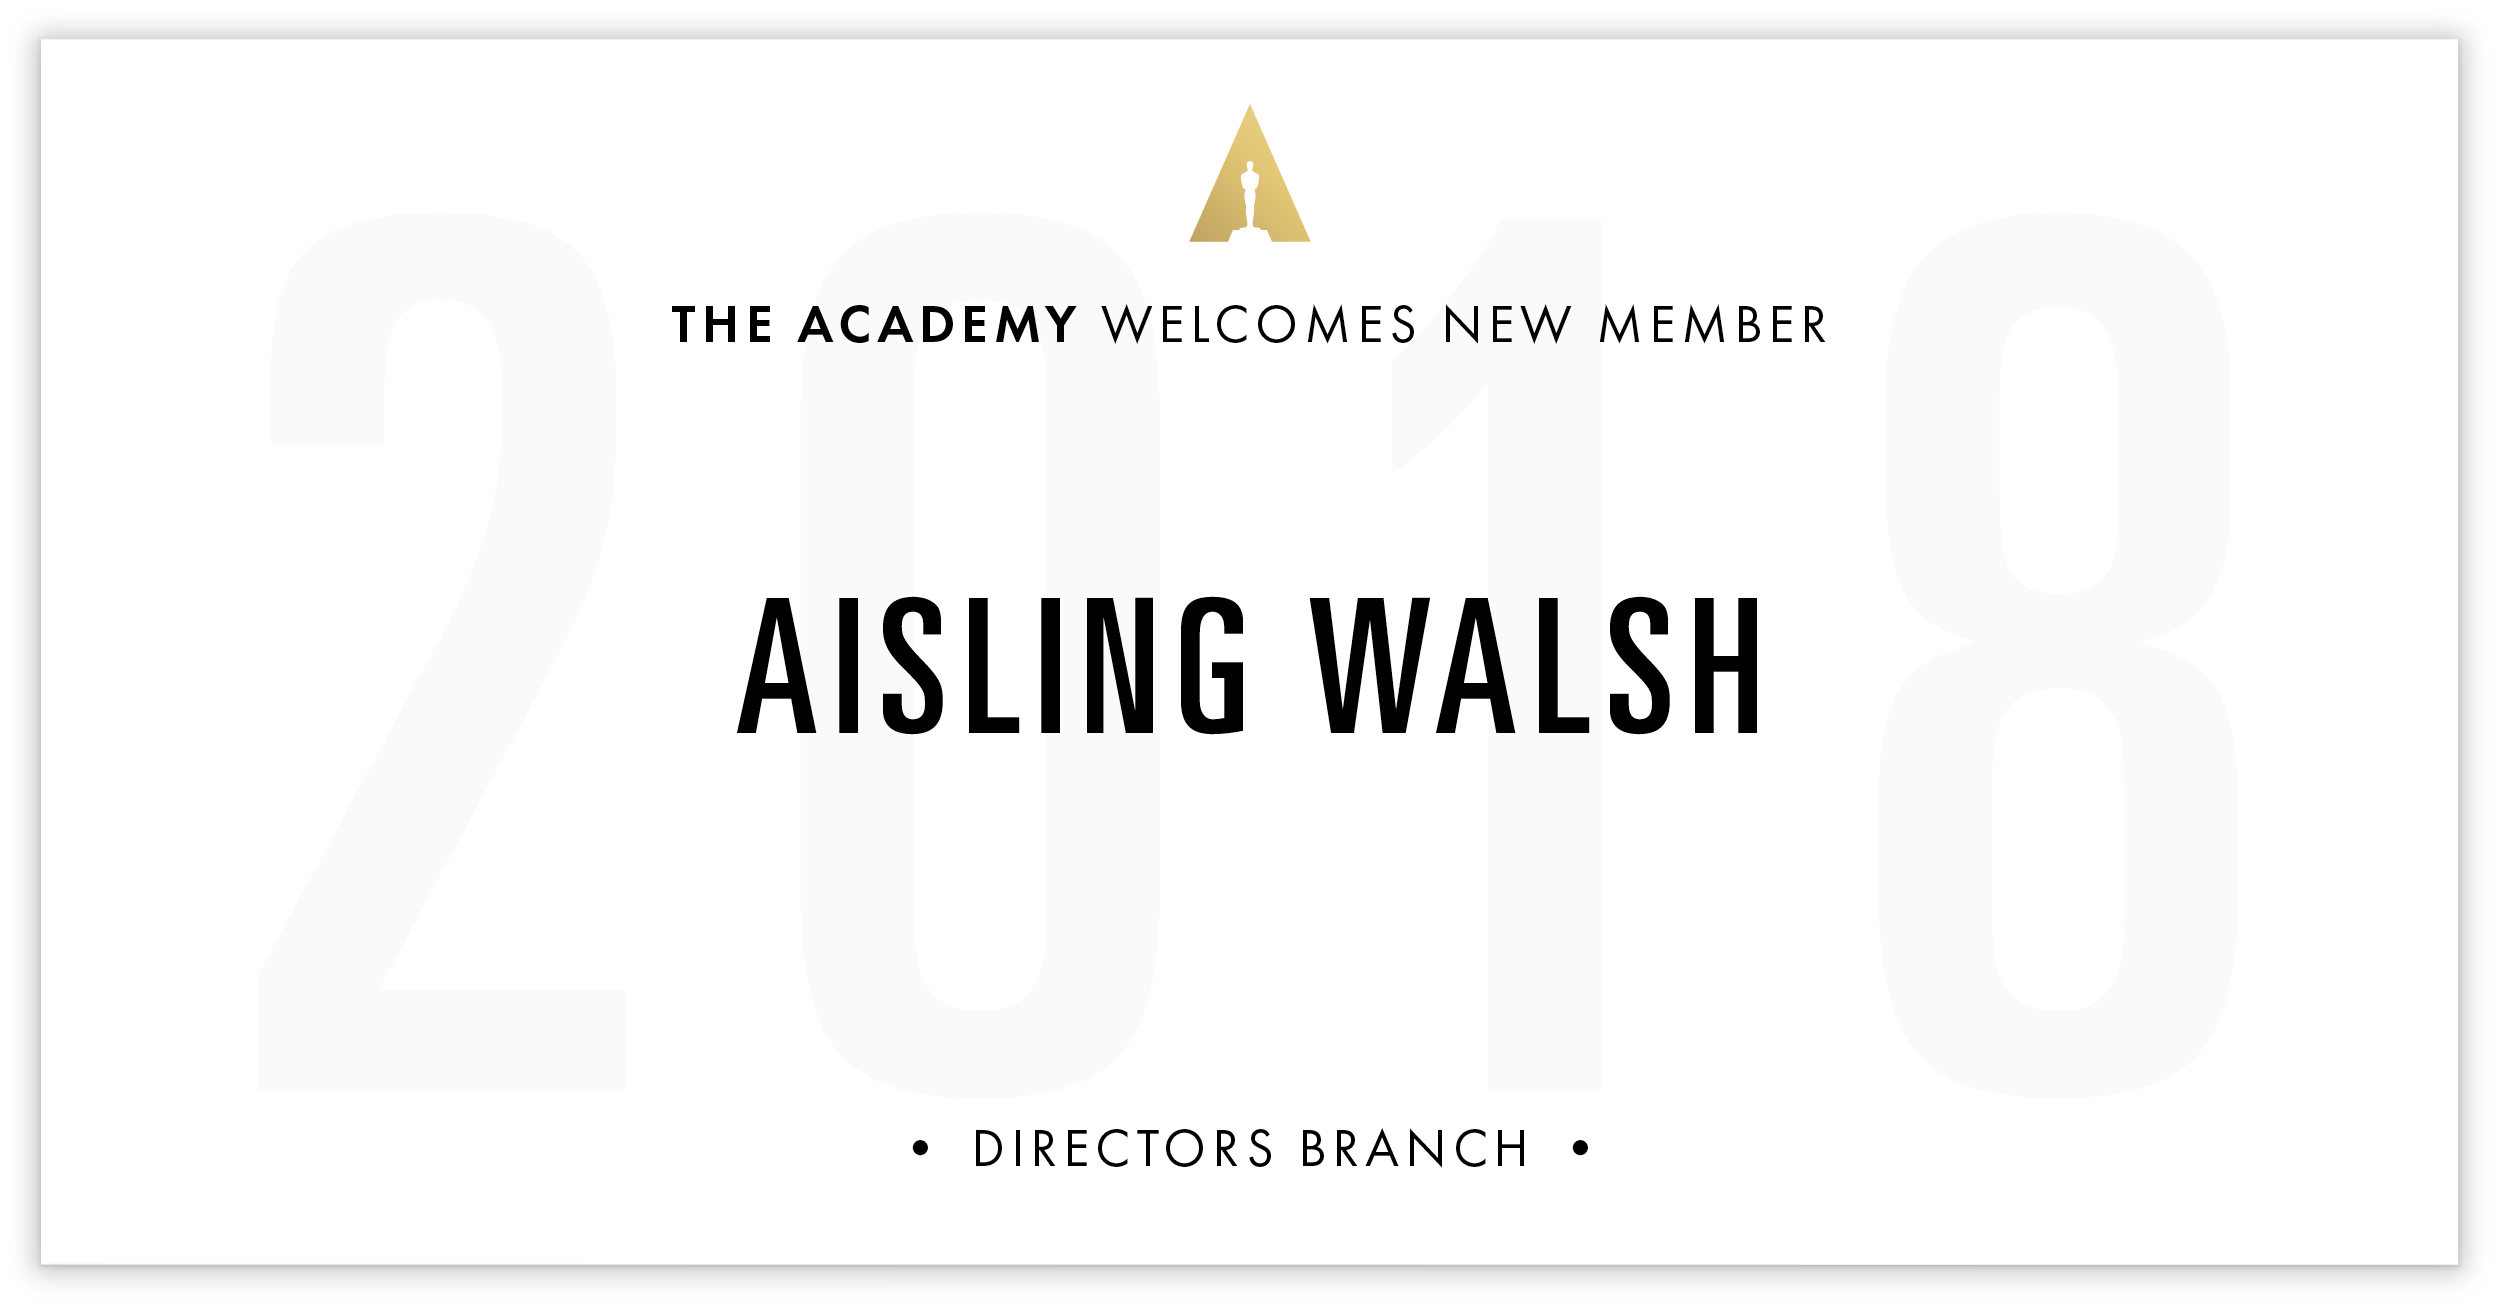 Aisling Walsh is invited!